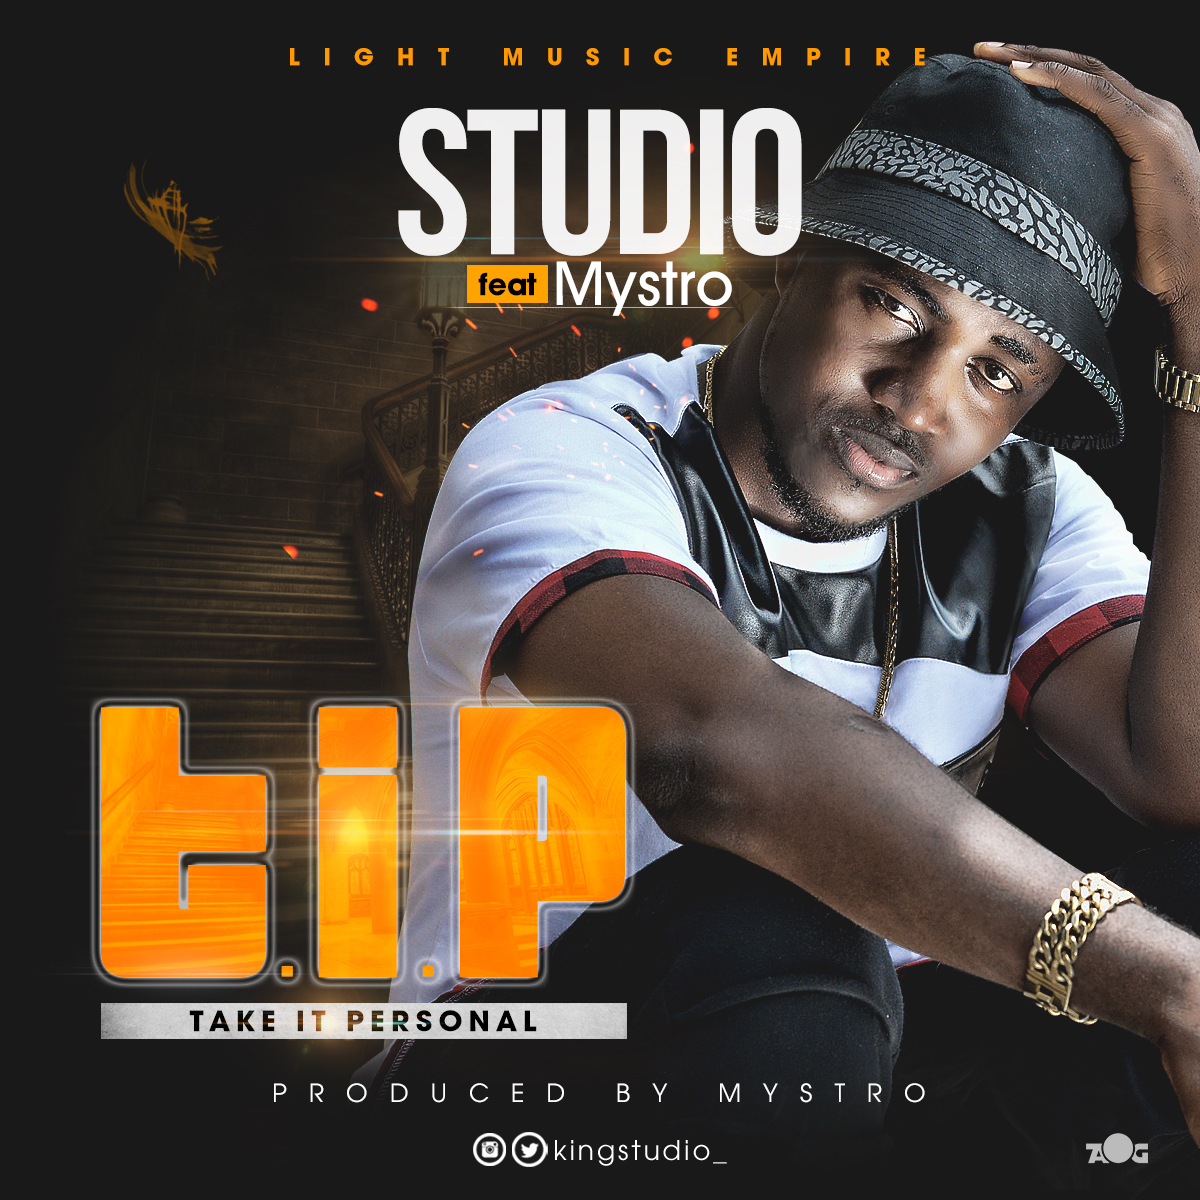 Studio - T.I.P (Take It Personal) ft. Mystro-ART